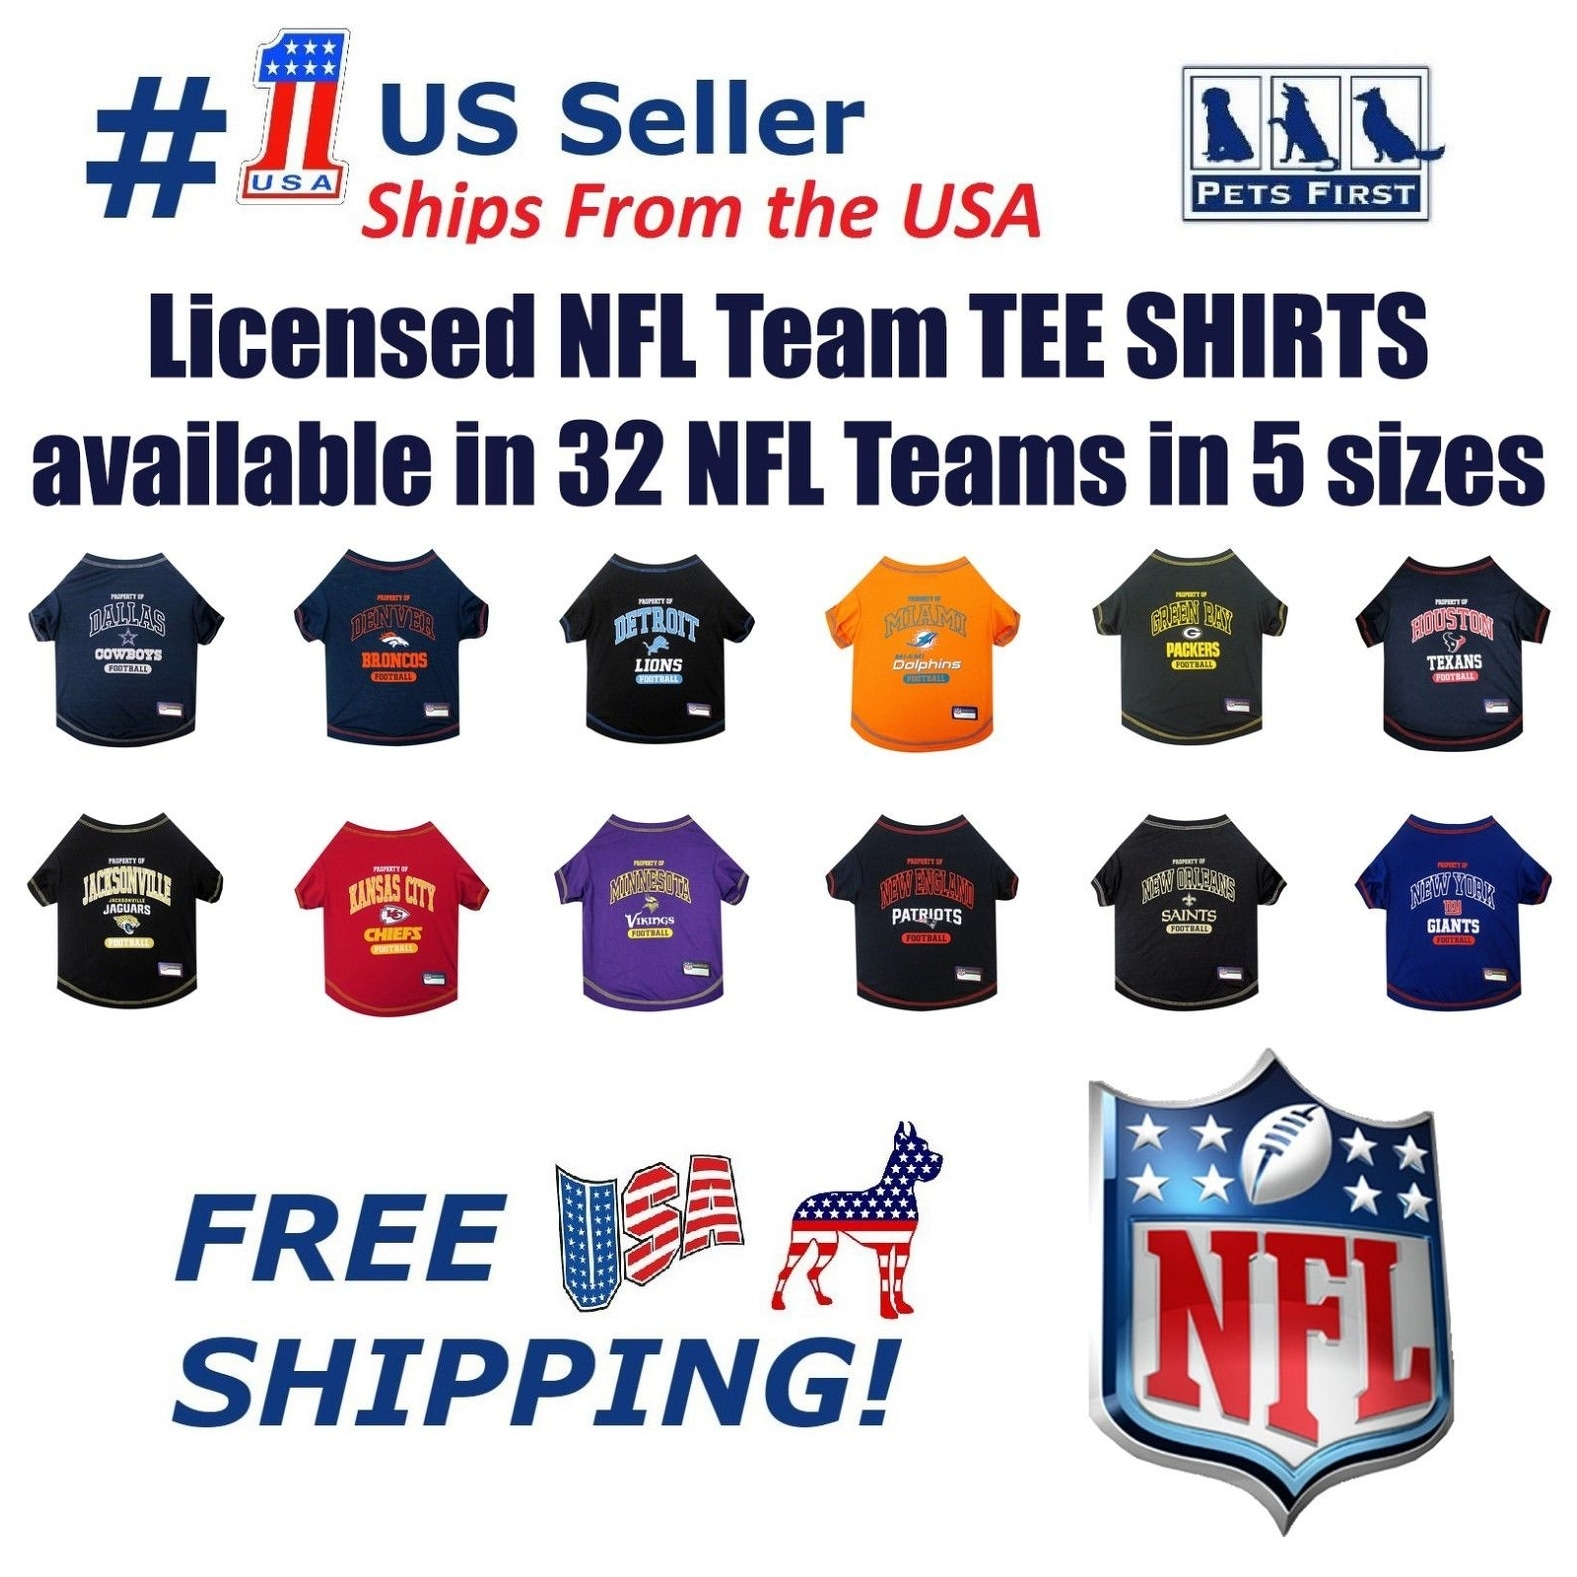 d2f53114 NFL Pet T-Shirt. Licensed, Wrinkle-free, Tee Shirt for Dogs/Cats. Football  Shirt